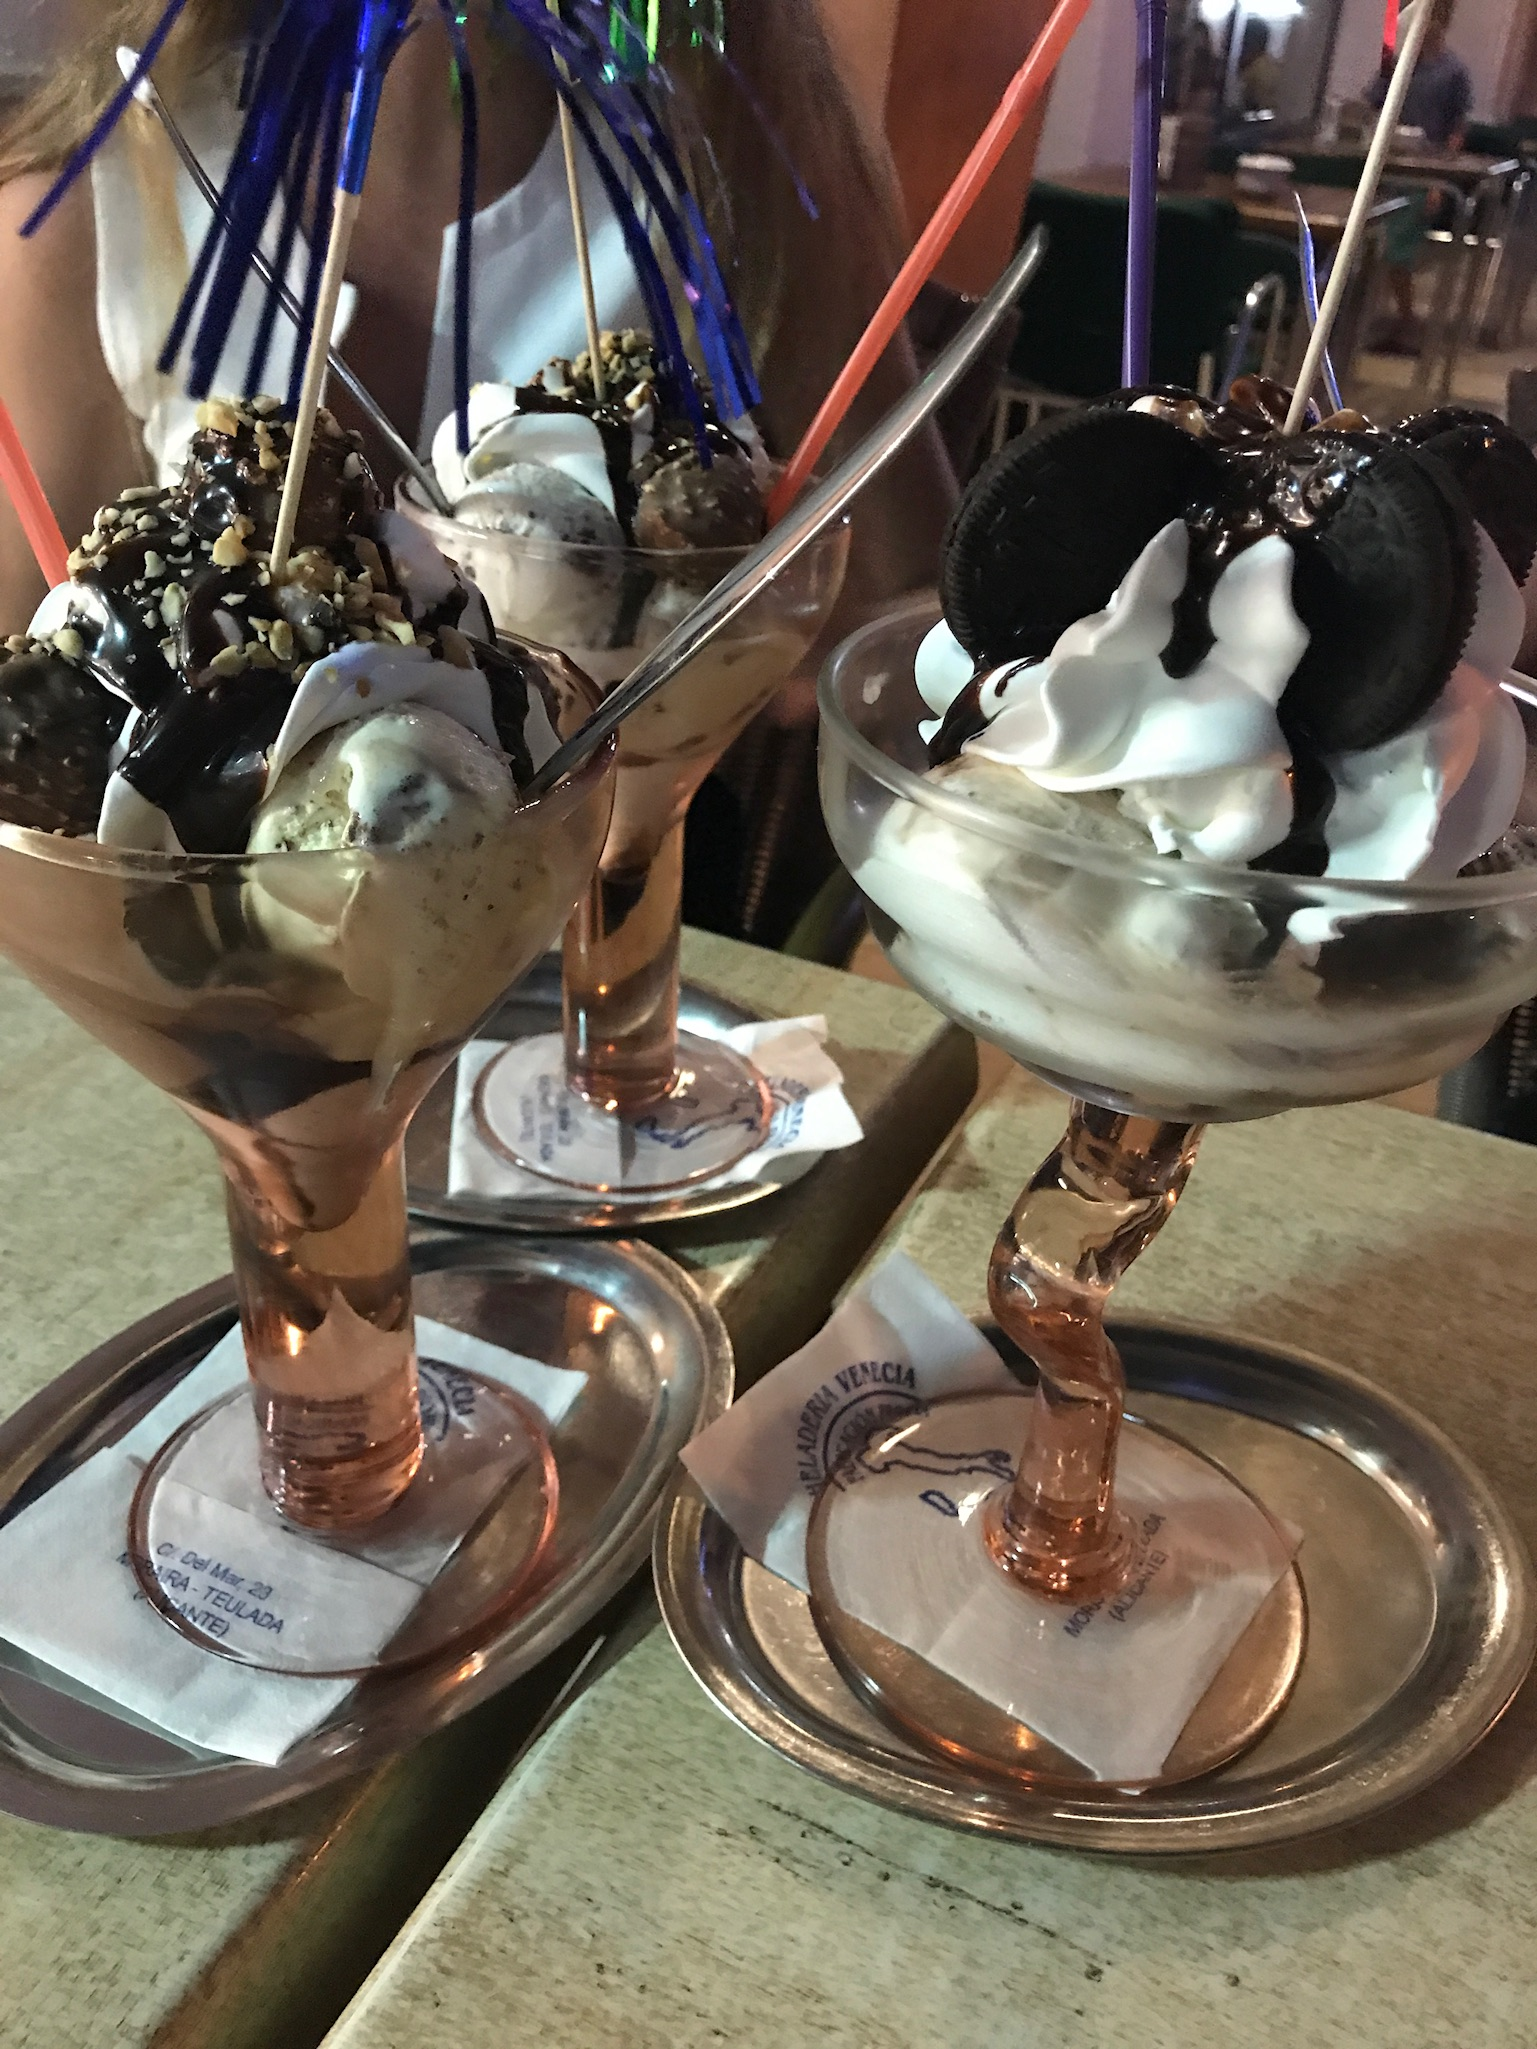 Icecream sundaes